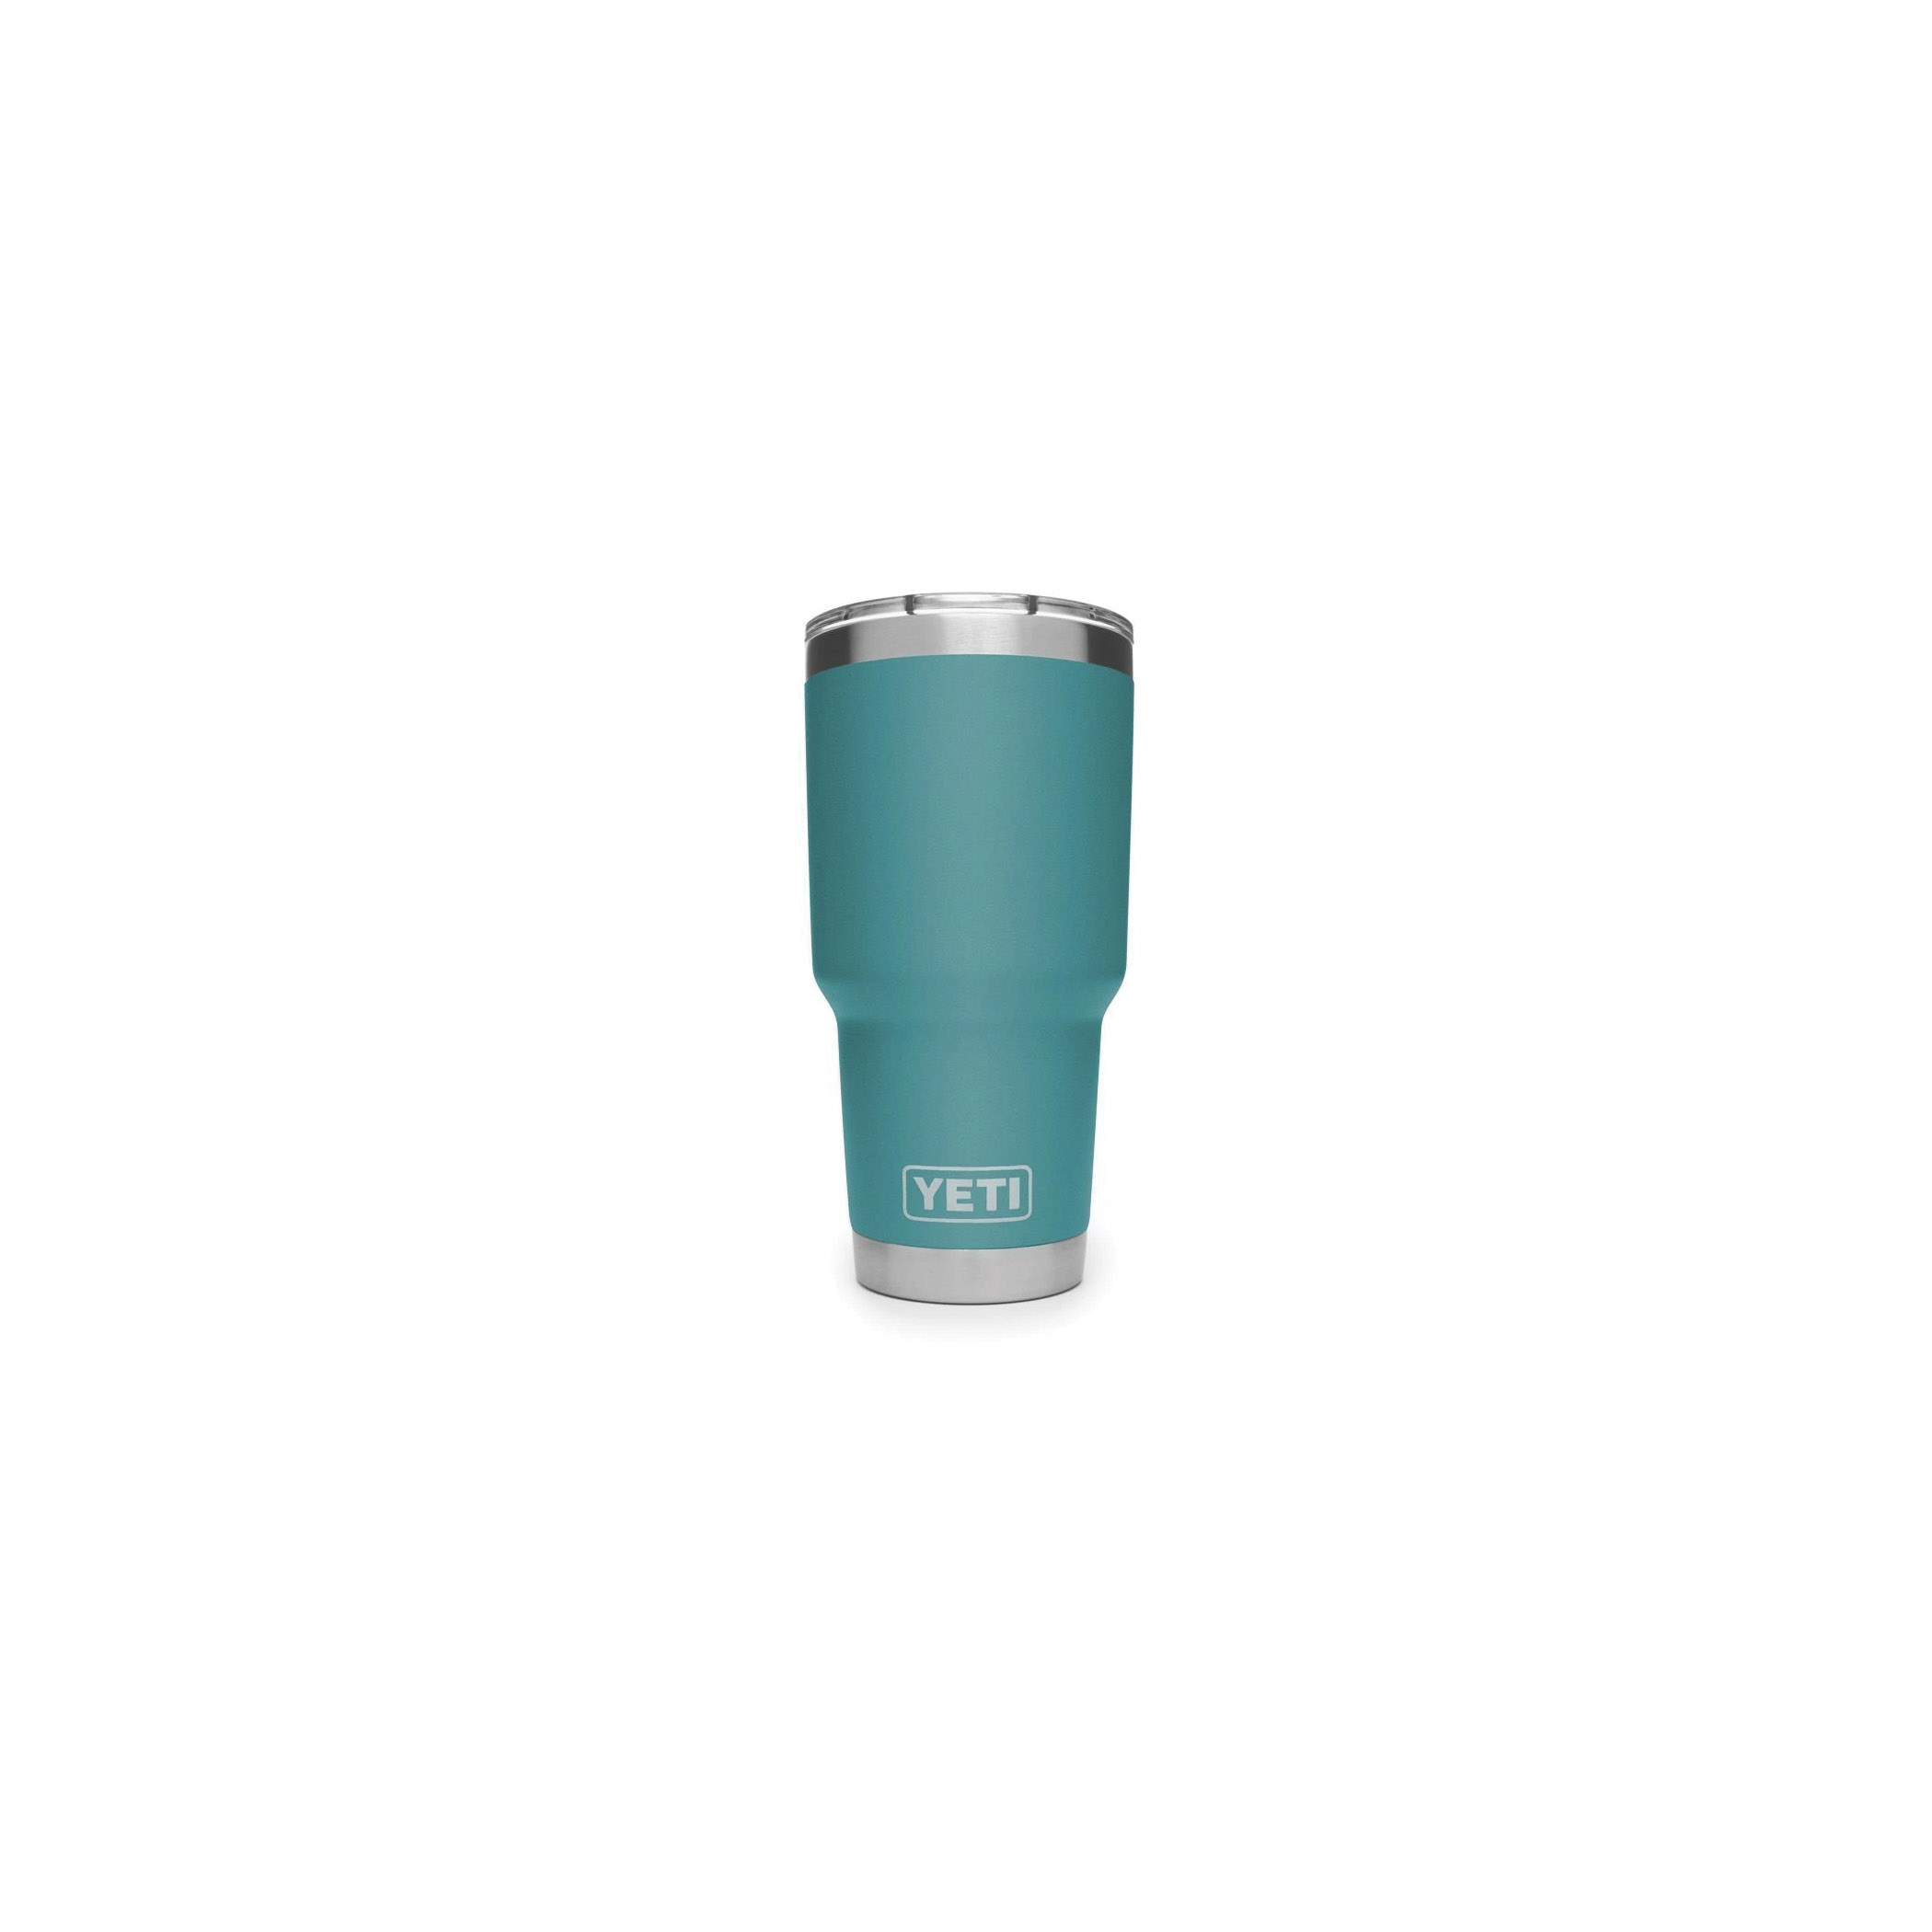 Picture of YETI Rambler 21070070049 Tumbler, 30 fl-oz Capacity, Stainless Steel, River Green